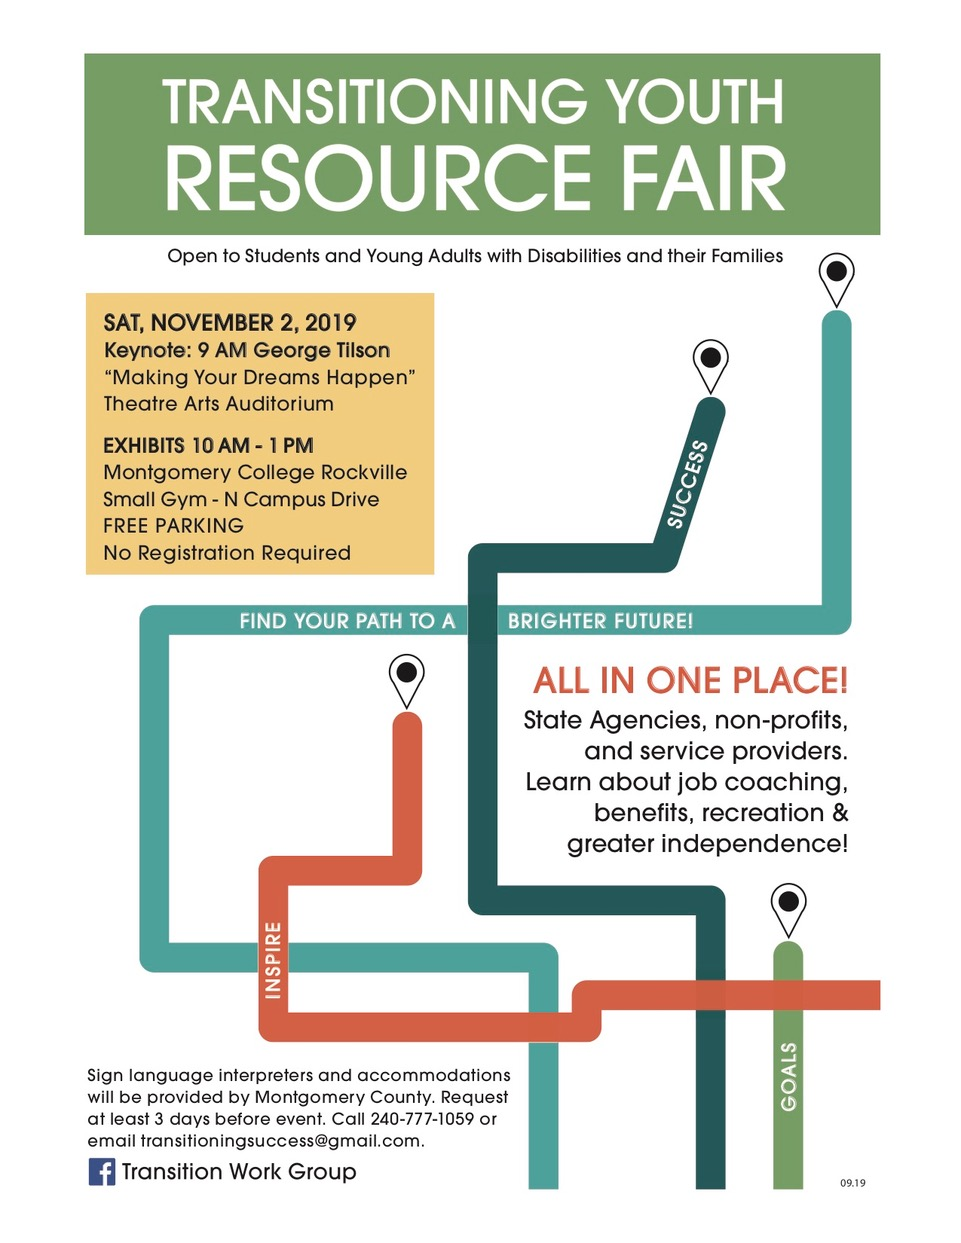 Transitioning Youth Resource Fair